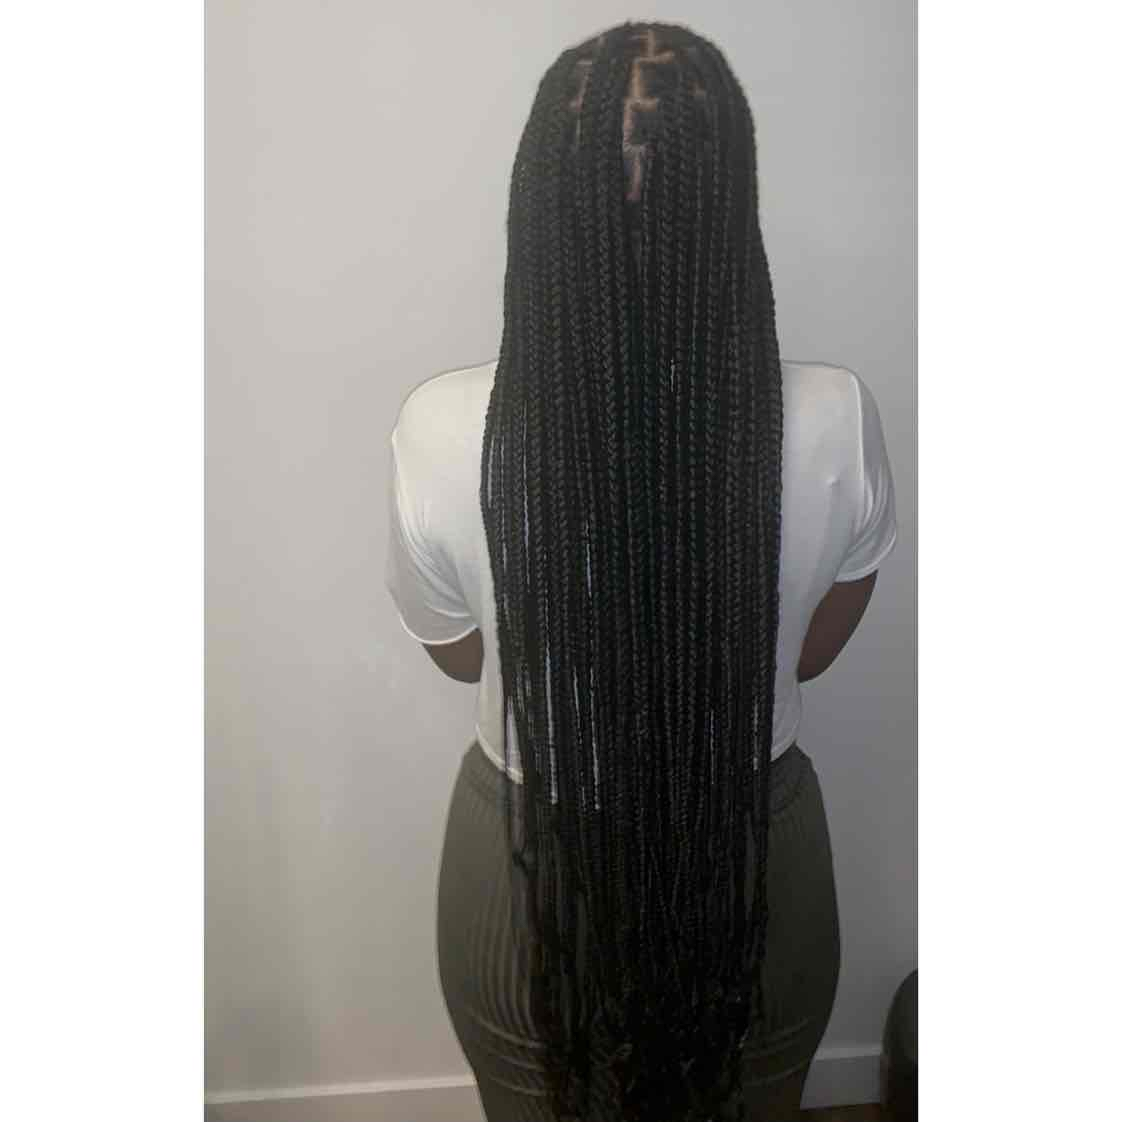 salon de coiffure afro tresse tresses box braids crochet braids vanilles tissages paris 75 77 78 91 92 93 94 95 MEUESASH